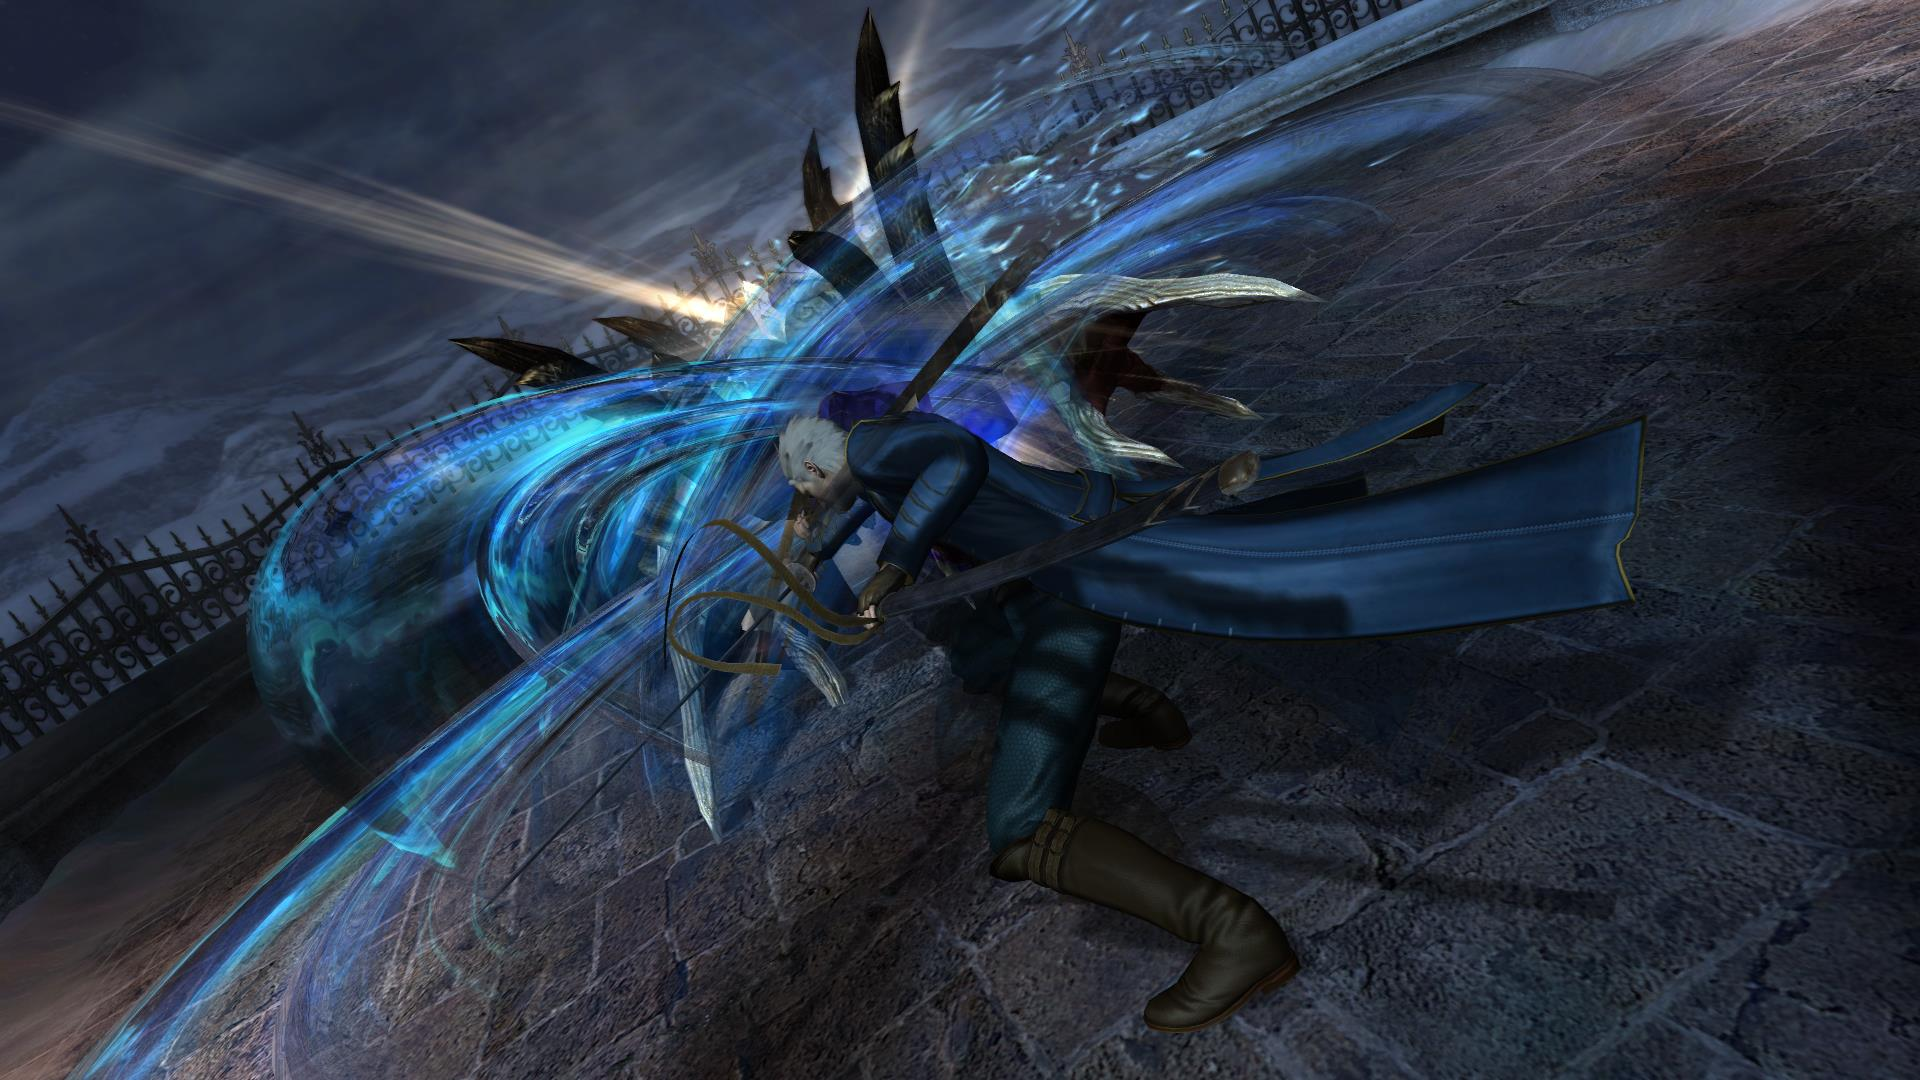 Devil May Cry 4 Special Edition Screens Show The New Playable